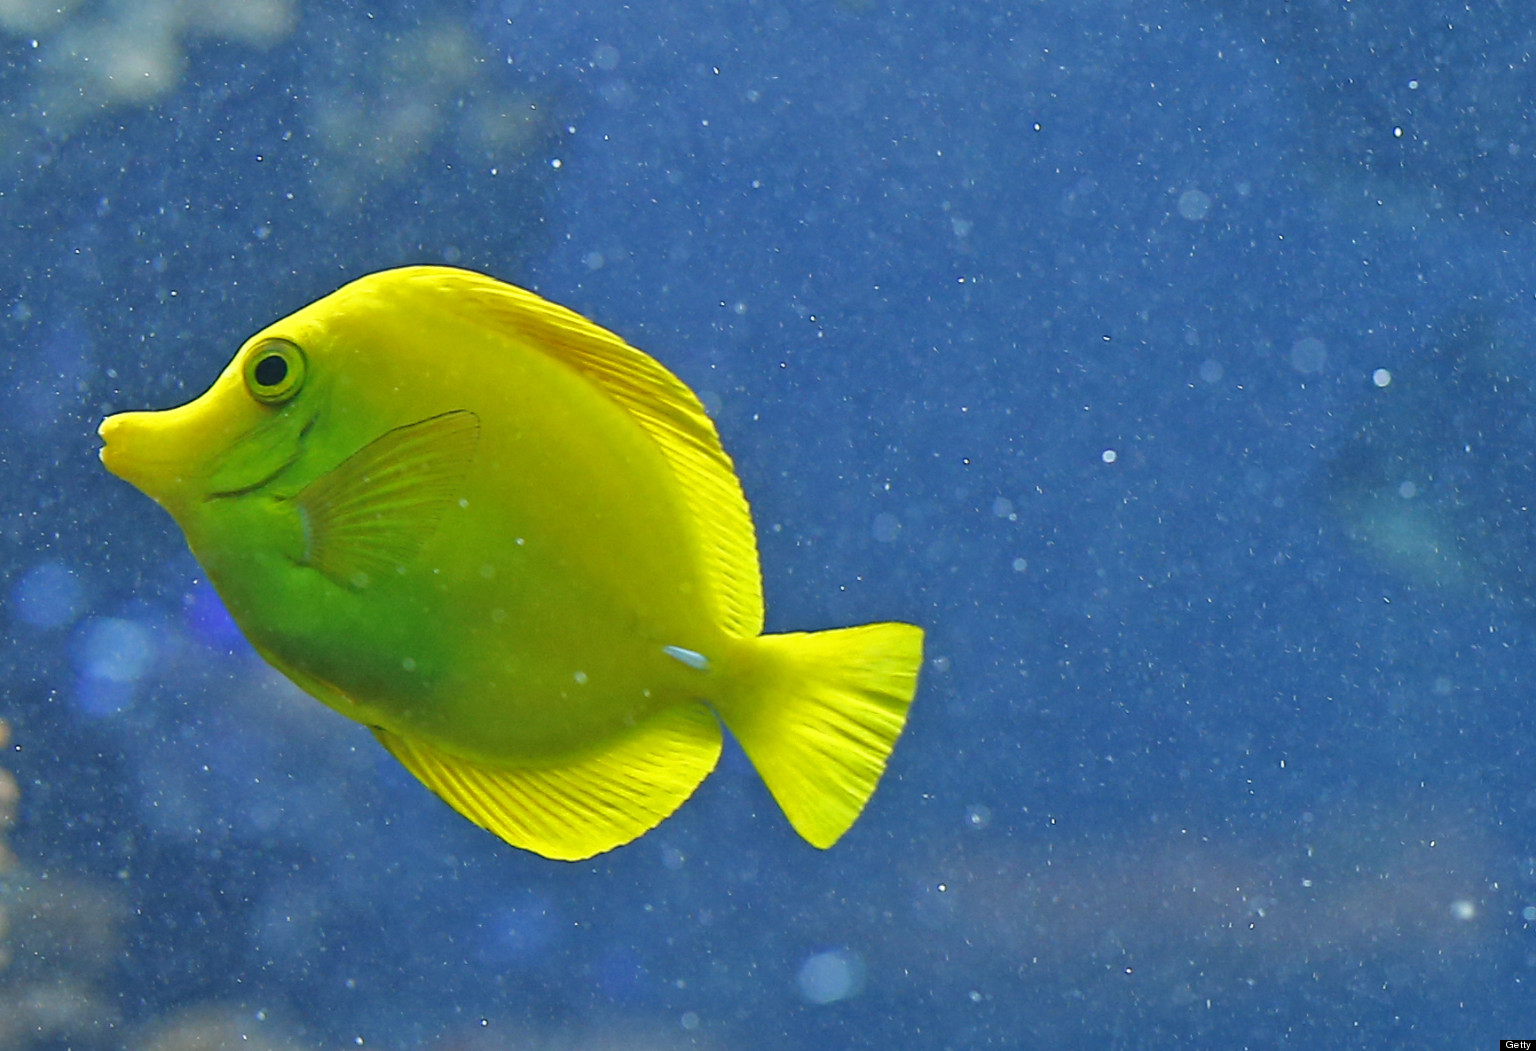 Fish aquarium quotes - Gps Guide 19 Peaceful Photos Of Fish Sure To Make You Feel Less Stressed Huffpost